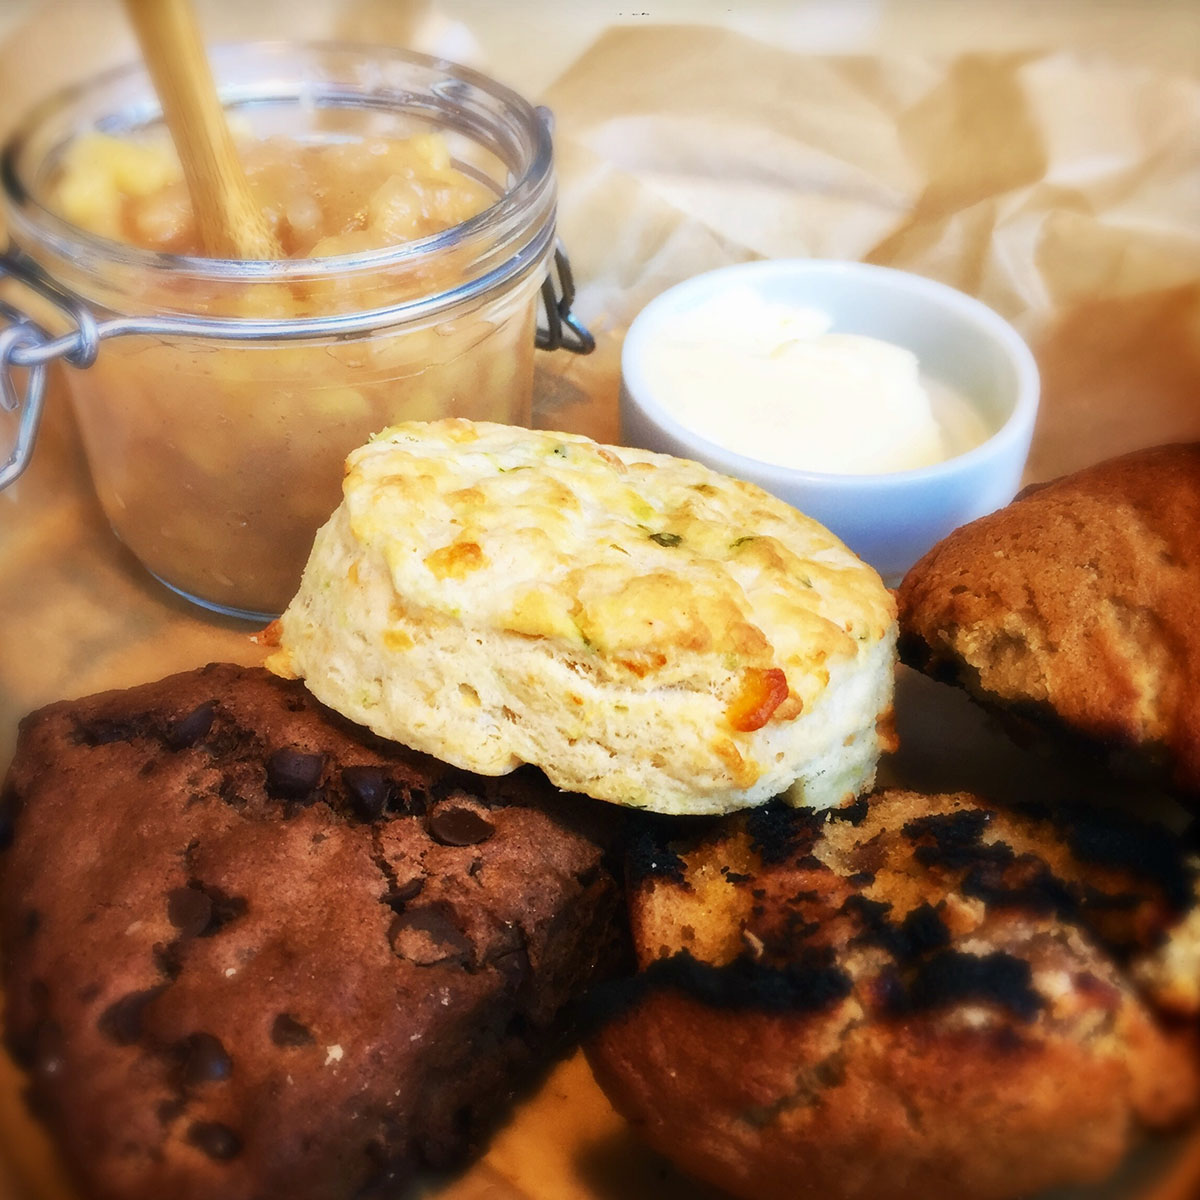 Baked goodies at the Paddle Inn. / Photo provided